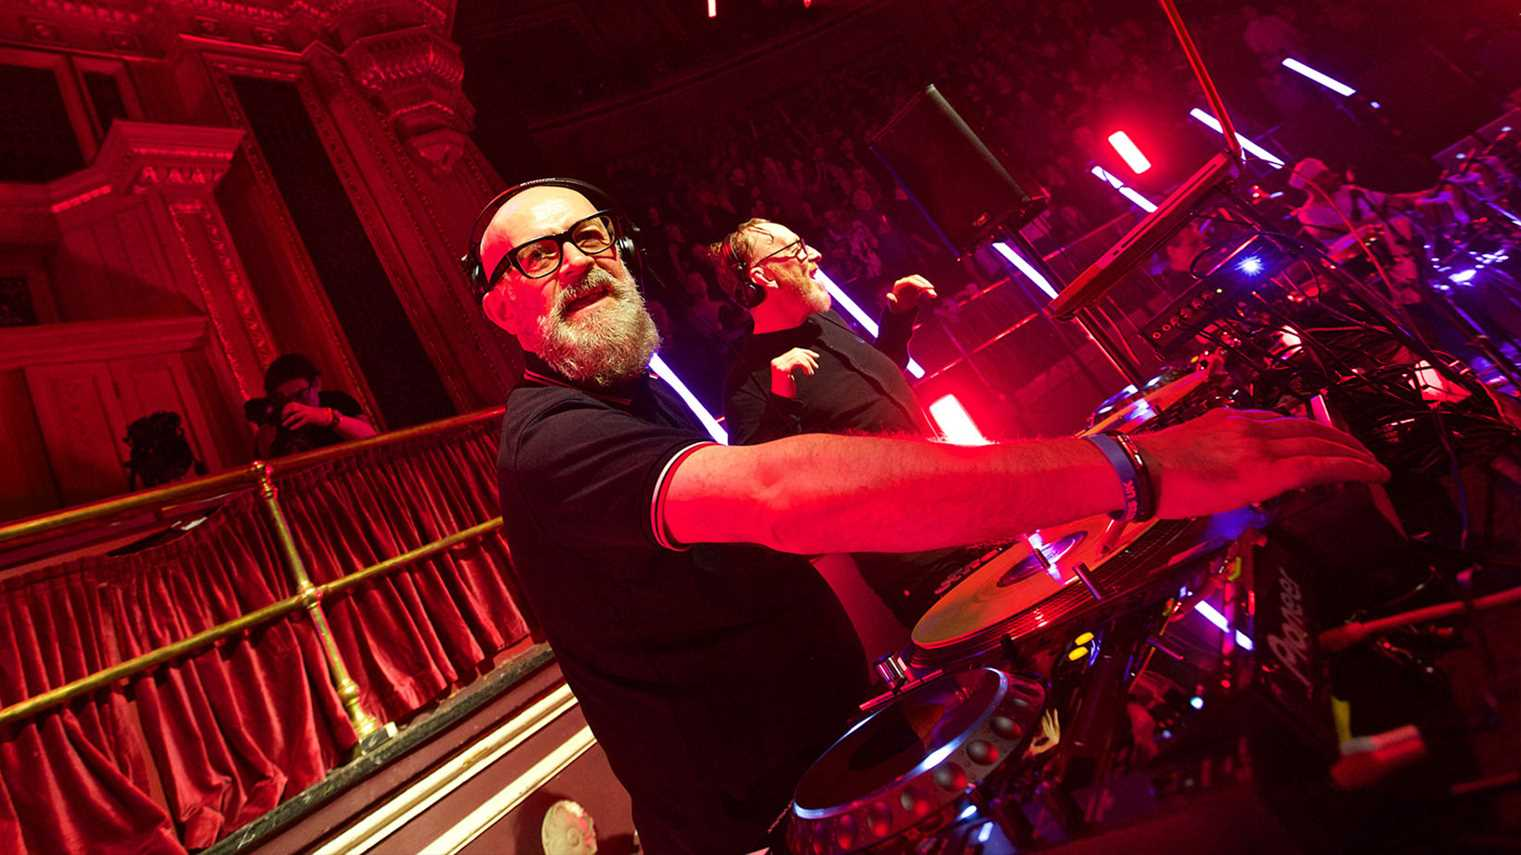 Get ready to rave: Hacienda Classical is coming to the big screen.